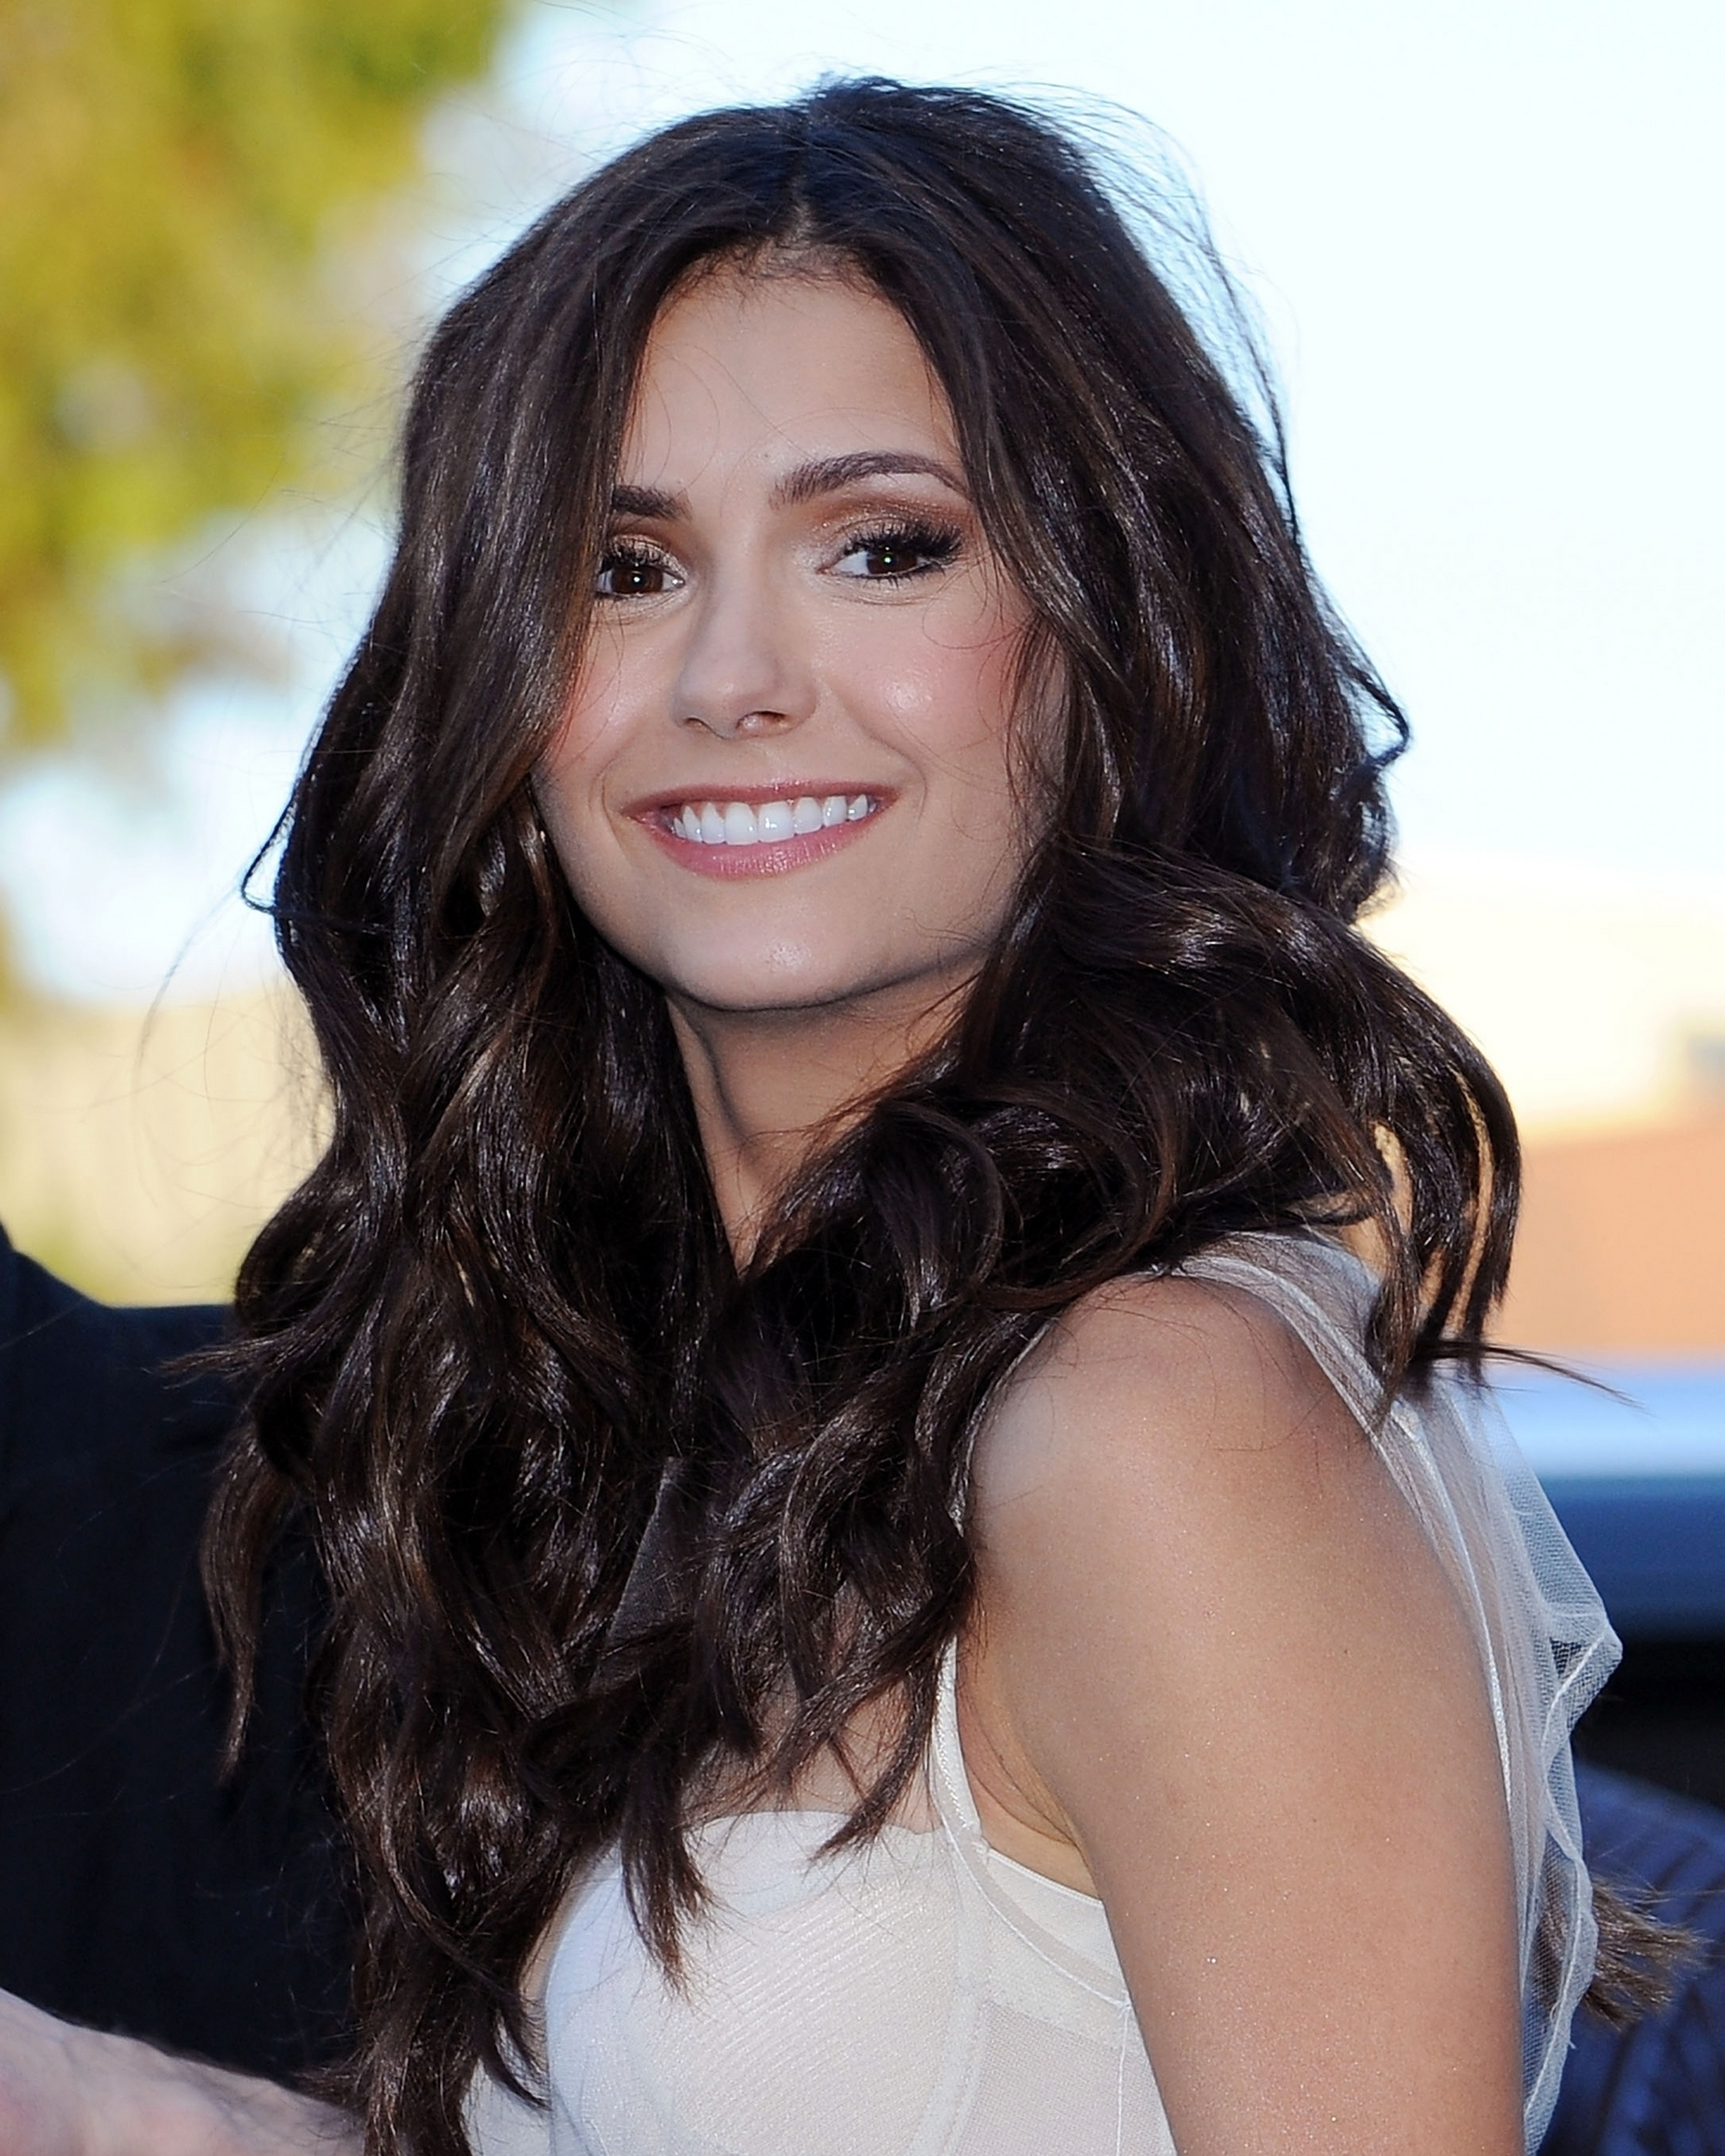 Nina Dobrev Wallpaper: Nina Dobrev Photo 2037 Of 4195 Pics, Wallpaper